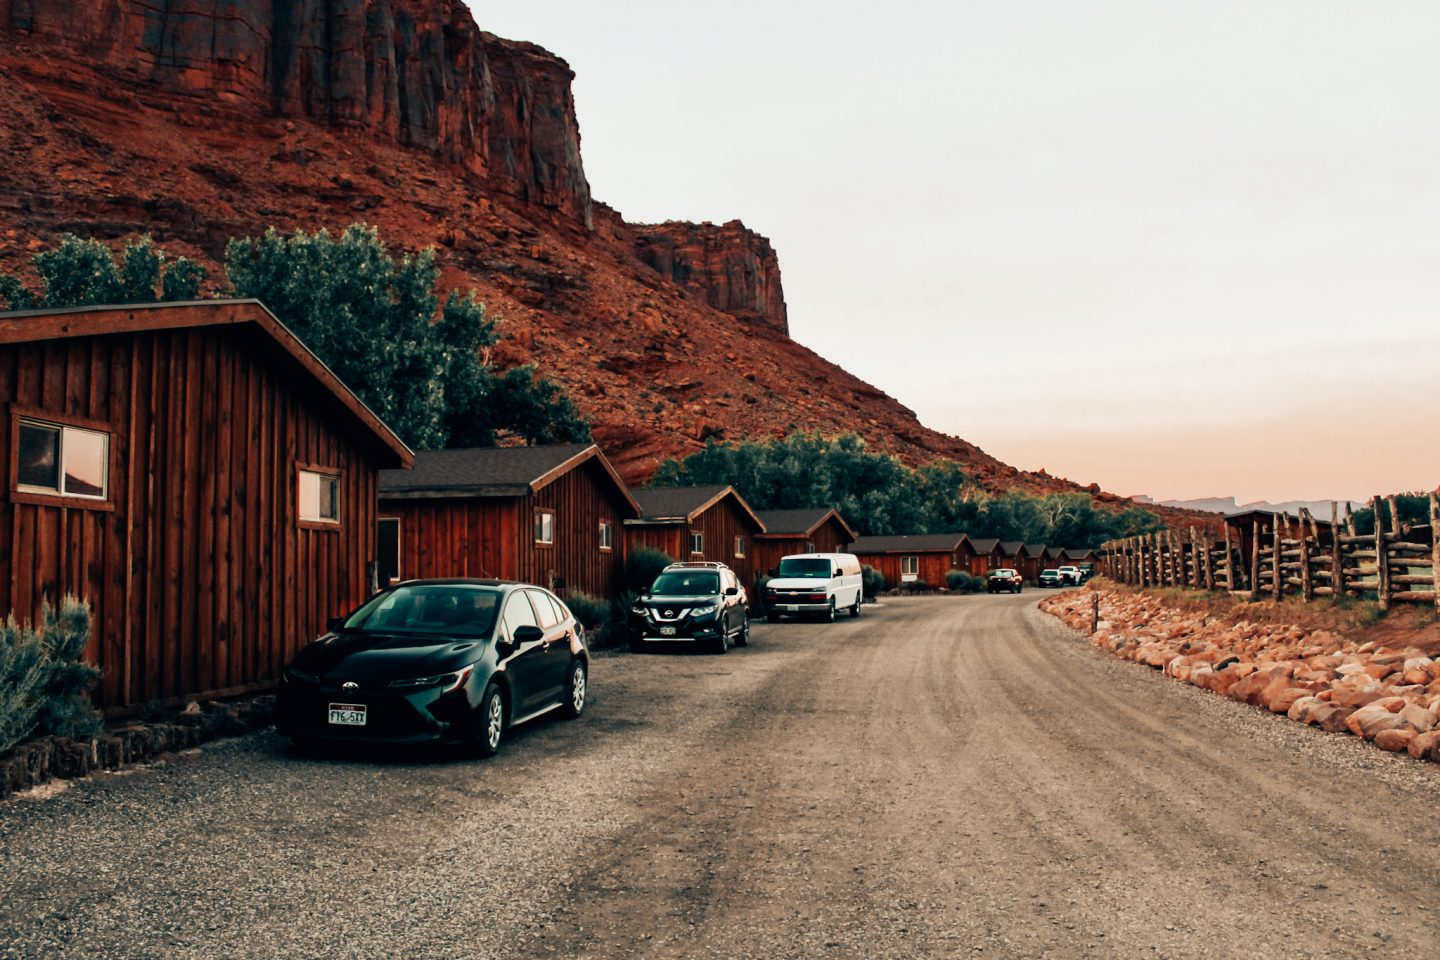 The cabins at Red Cliffs Lodge